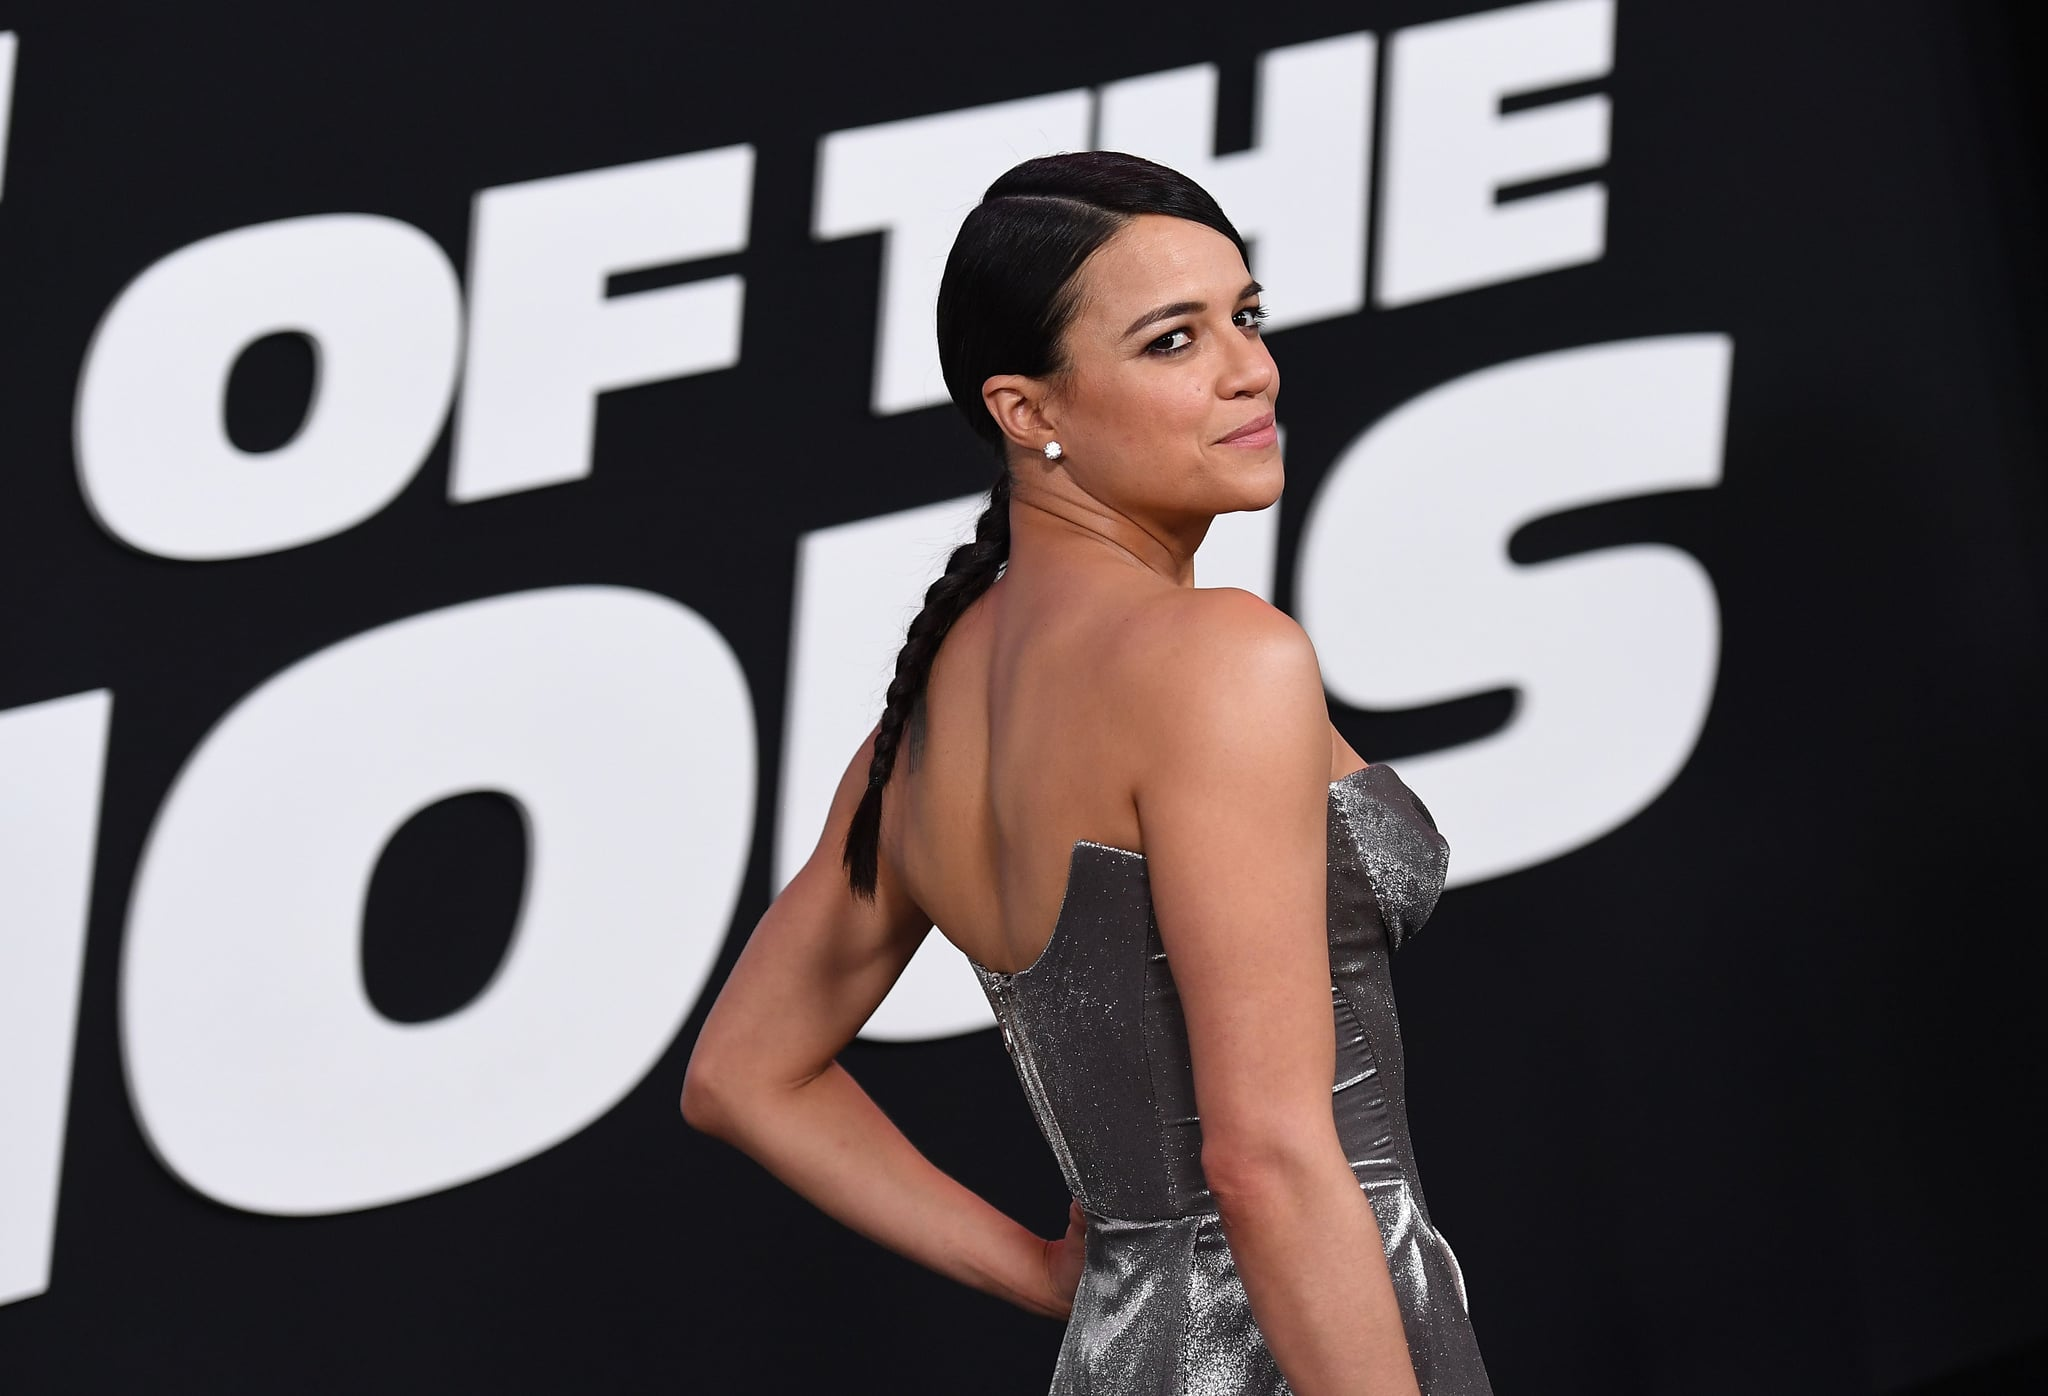 Michelle Rodriguez Considers Leaving Franchise